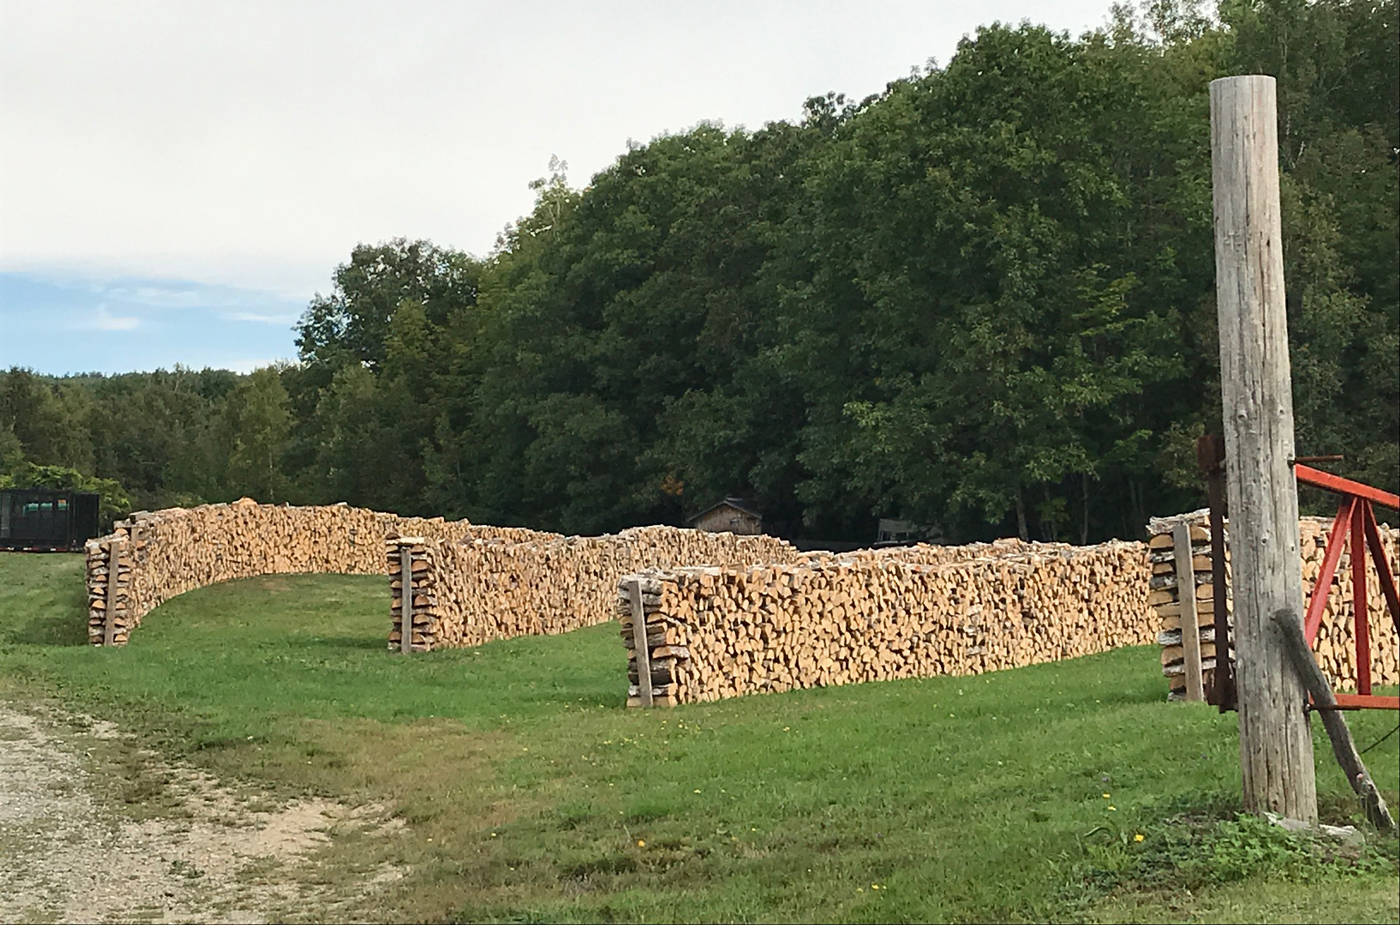 Neatest wood pile I have ever seen